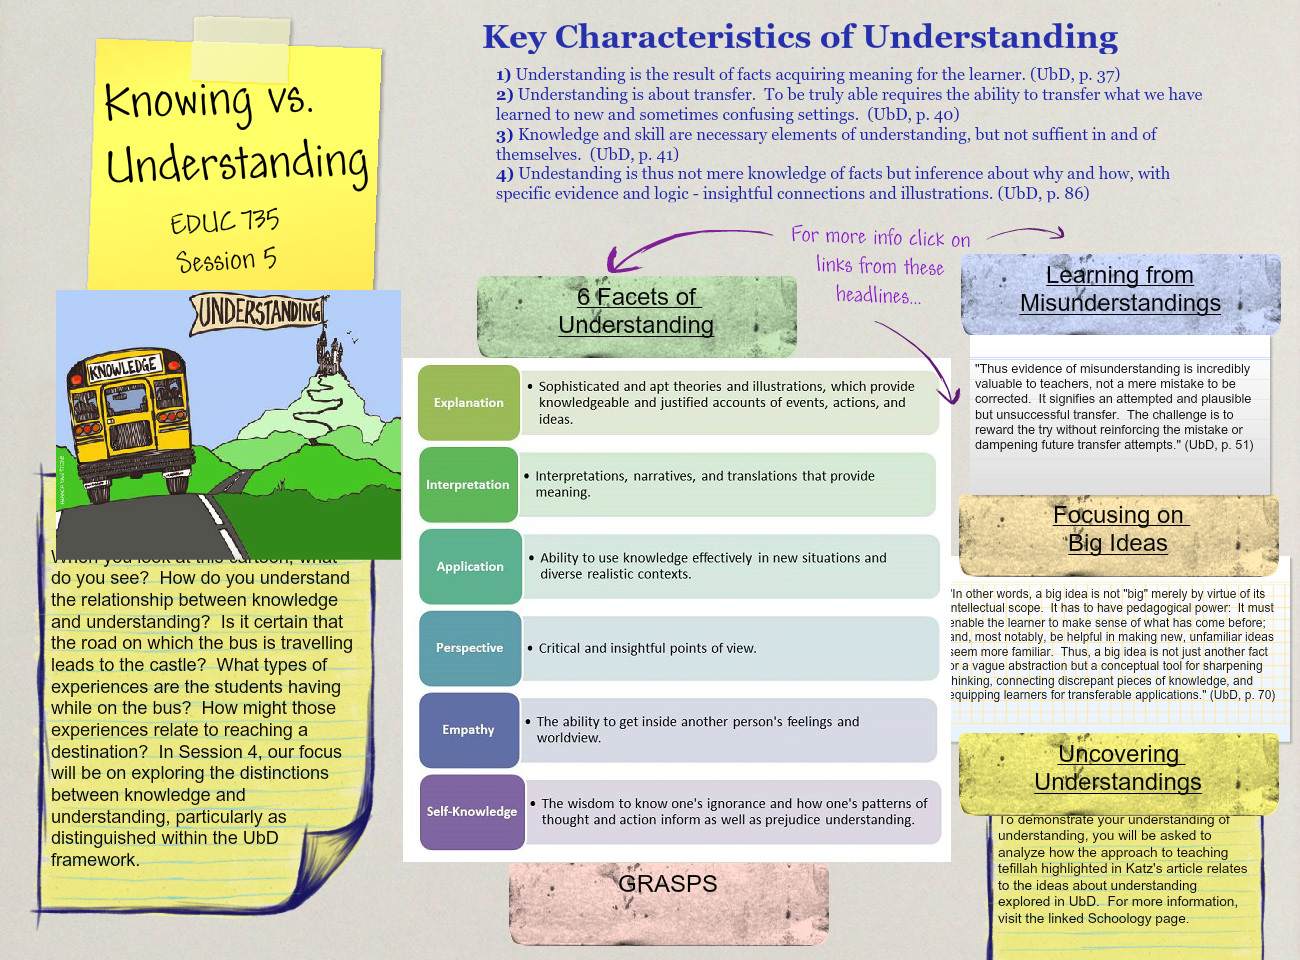 Knowing vs. Understanding